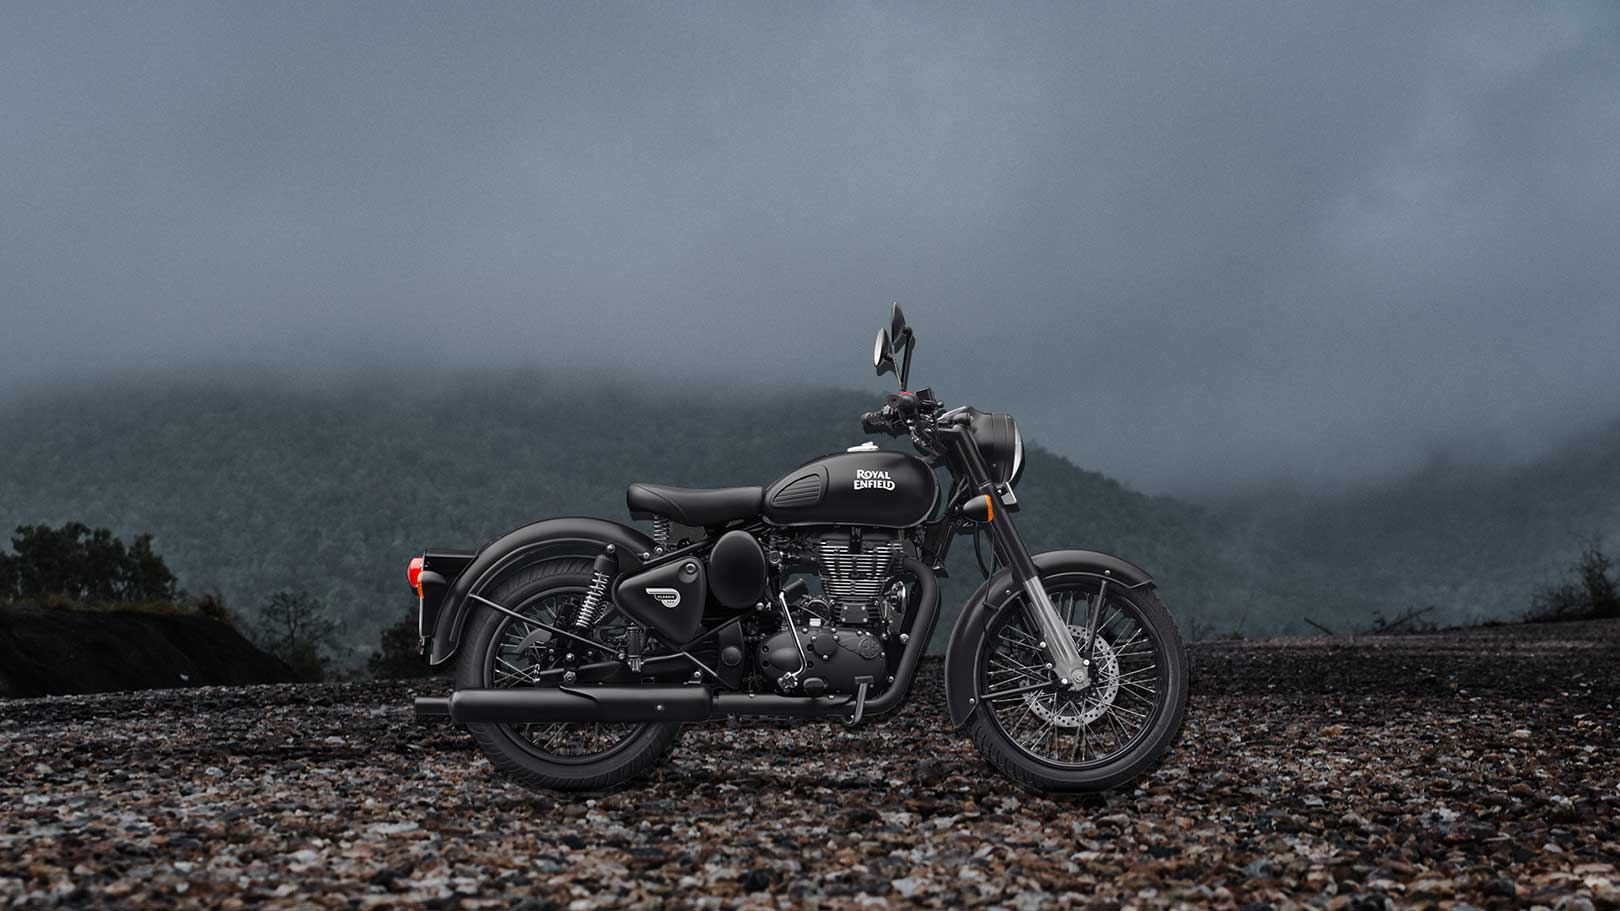 Royal Enfield Thunderbird X, Royal Enfield Bullet, Royal Enfield Himalayan, Royal Enfield Continental, Royal Enfield Signal, Royal Enfield Interceptor, Royal Enfield Classic 350, Royal Enfield Classic 500, Royal Enfield Gunmetal, Royal Enfield jaipur, royal enfield, royal enfield rajesh motors, rajesh motors, bikedekho, royalenfield, top bikes in india, royal enfield india , trip, ladakh, nanital, rajesh motors trip, royalenfield trip,Royal Enfield Book your ride now, Visit now royal enfield rajesh motors, re jaipur